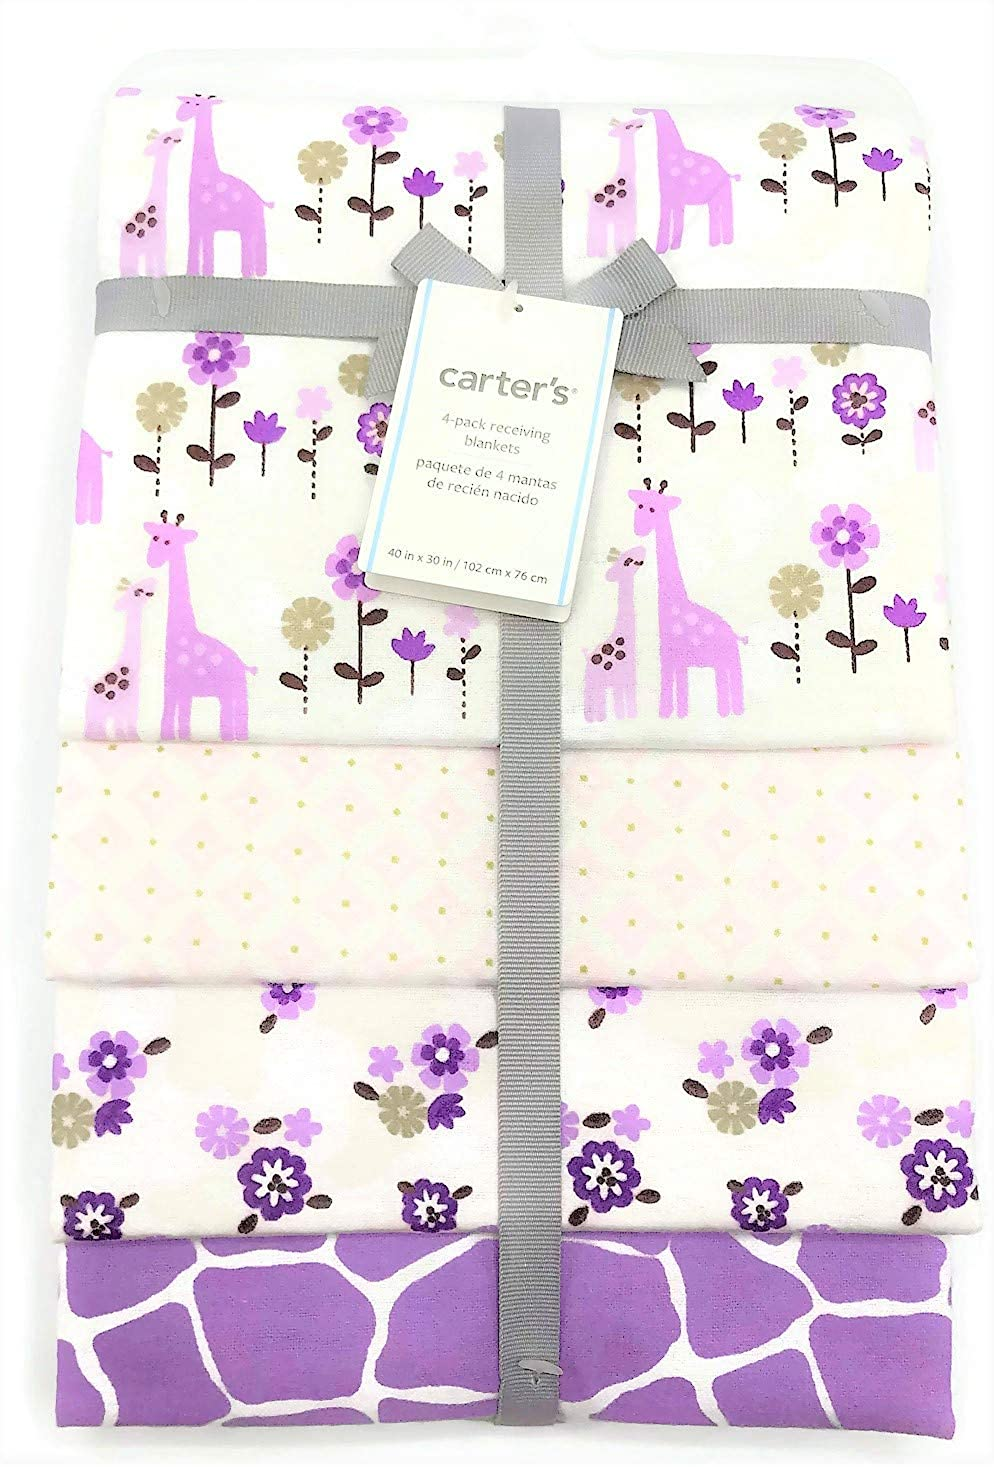 Amazon.com: Carters 4-Pack Receiving Blankets Lavender Giraffes and ...